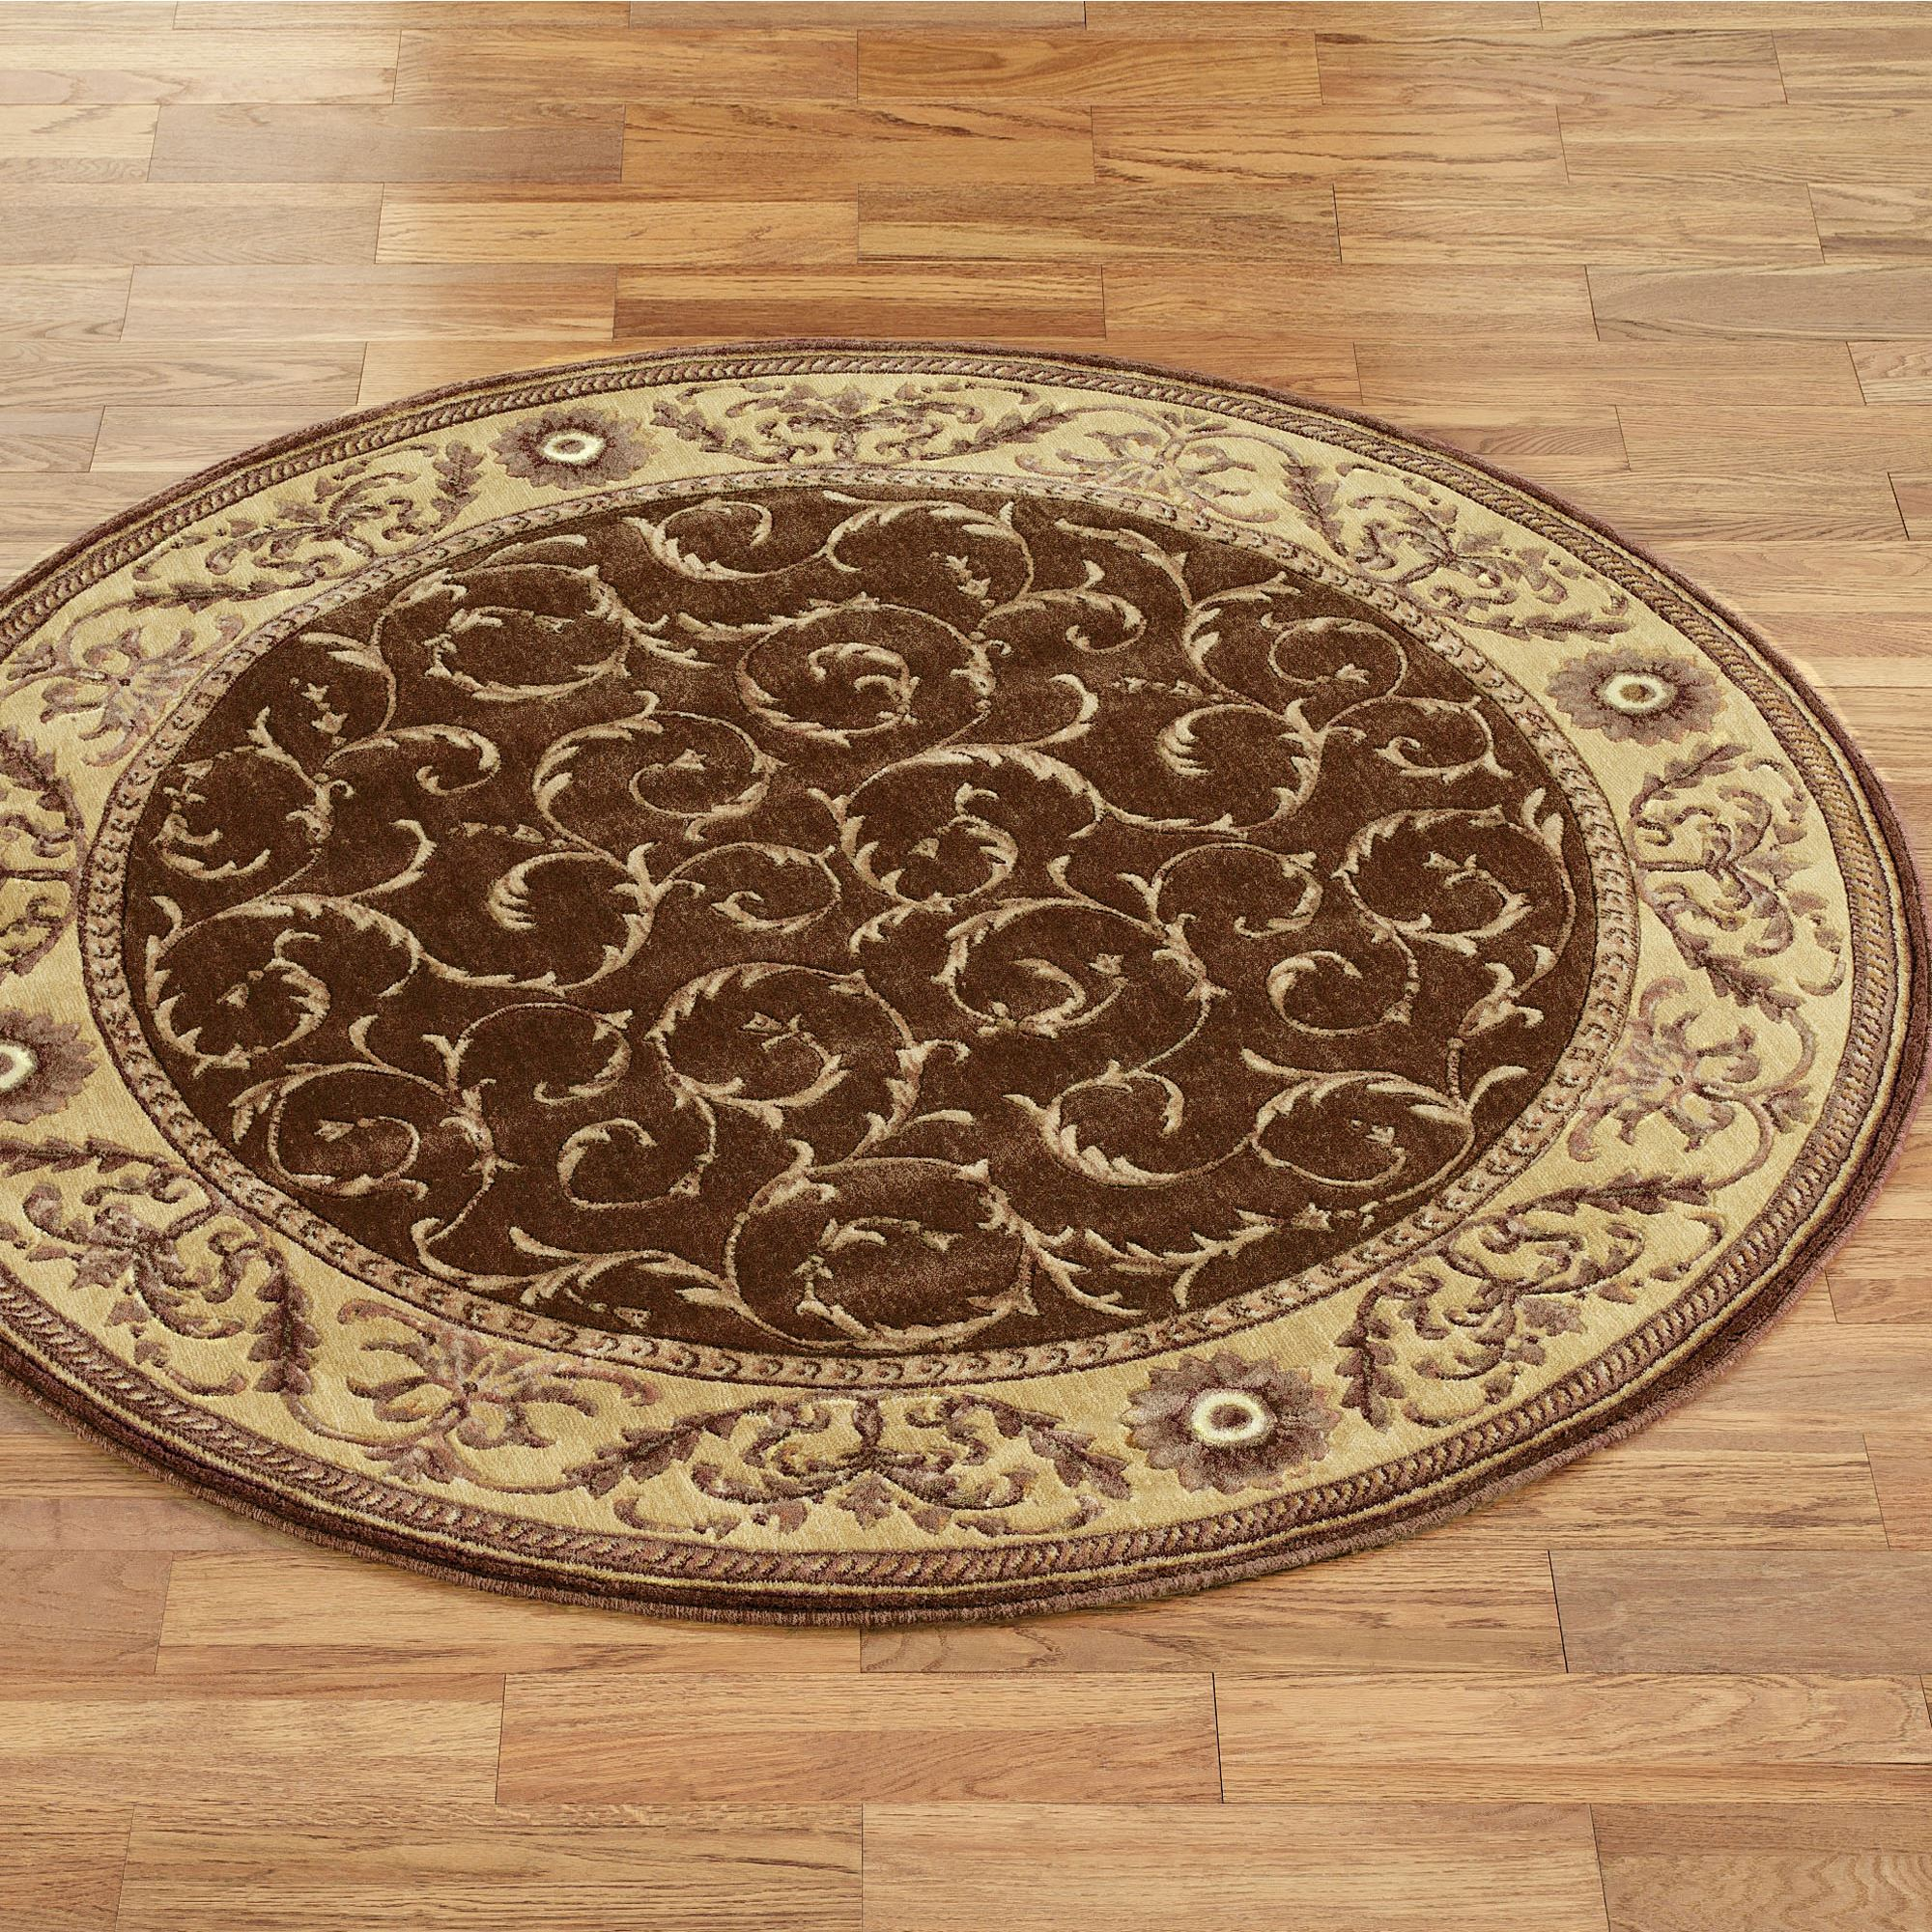 Somerset Scroll Round Rugs